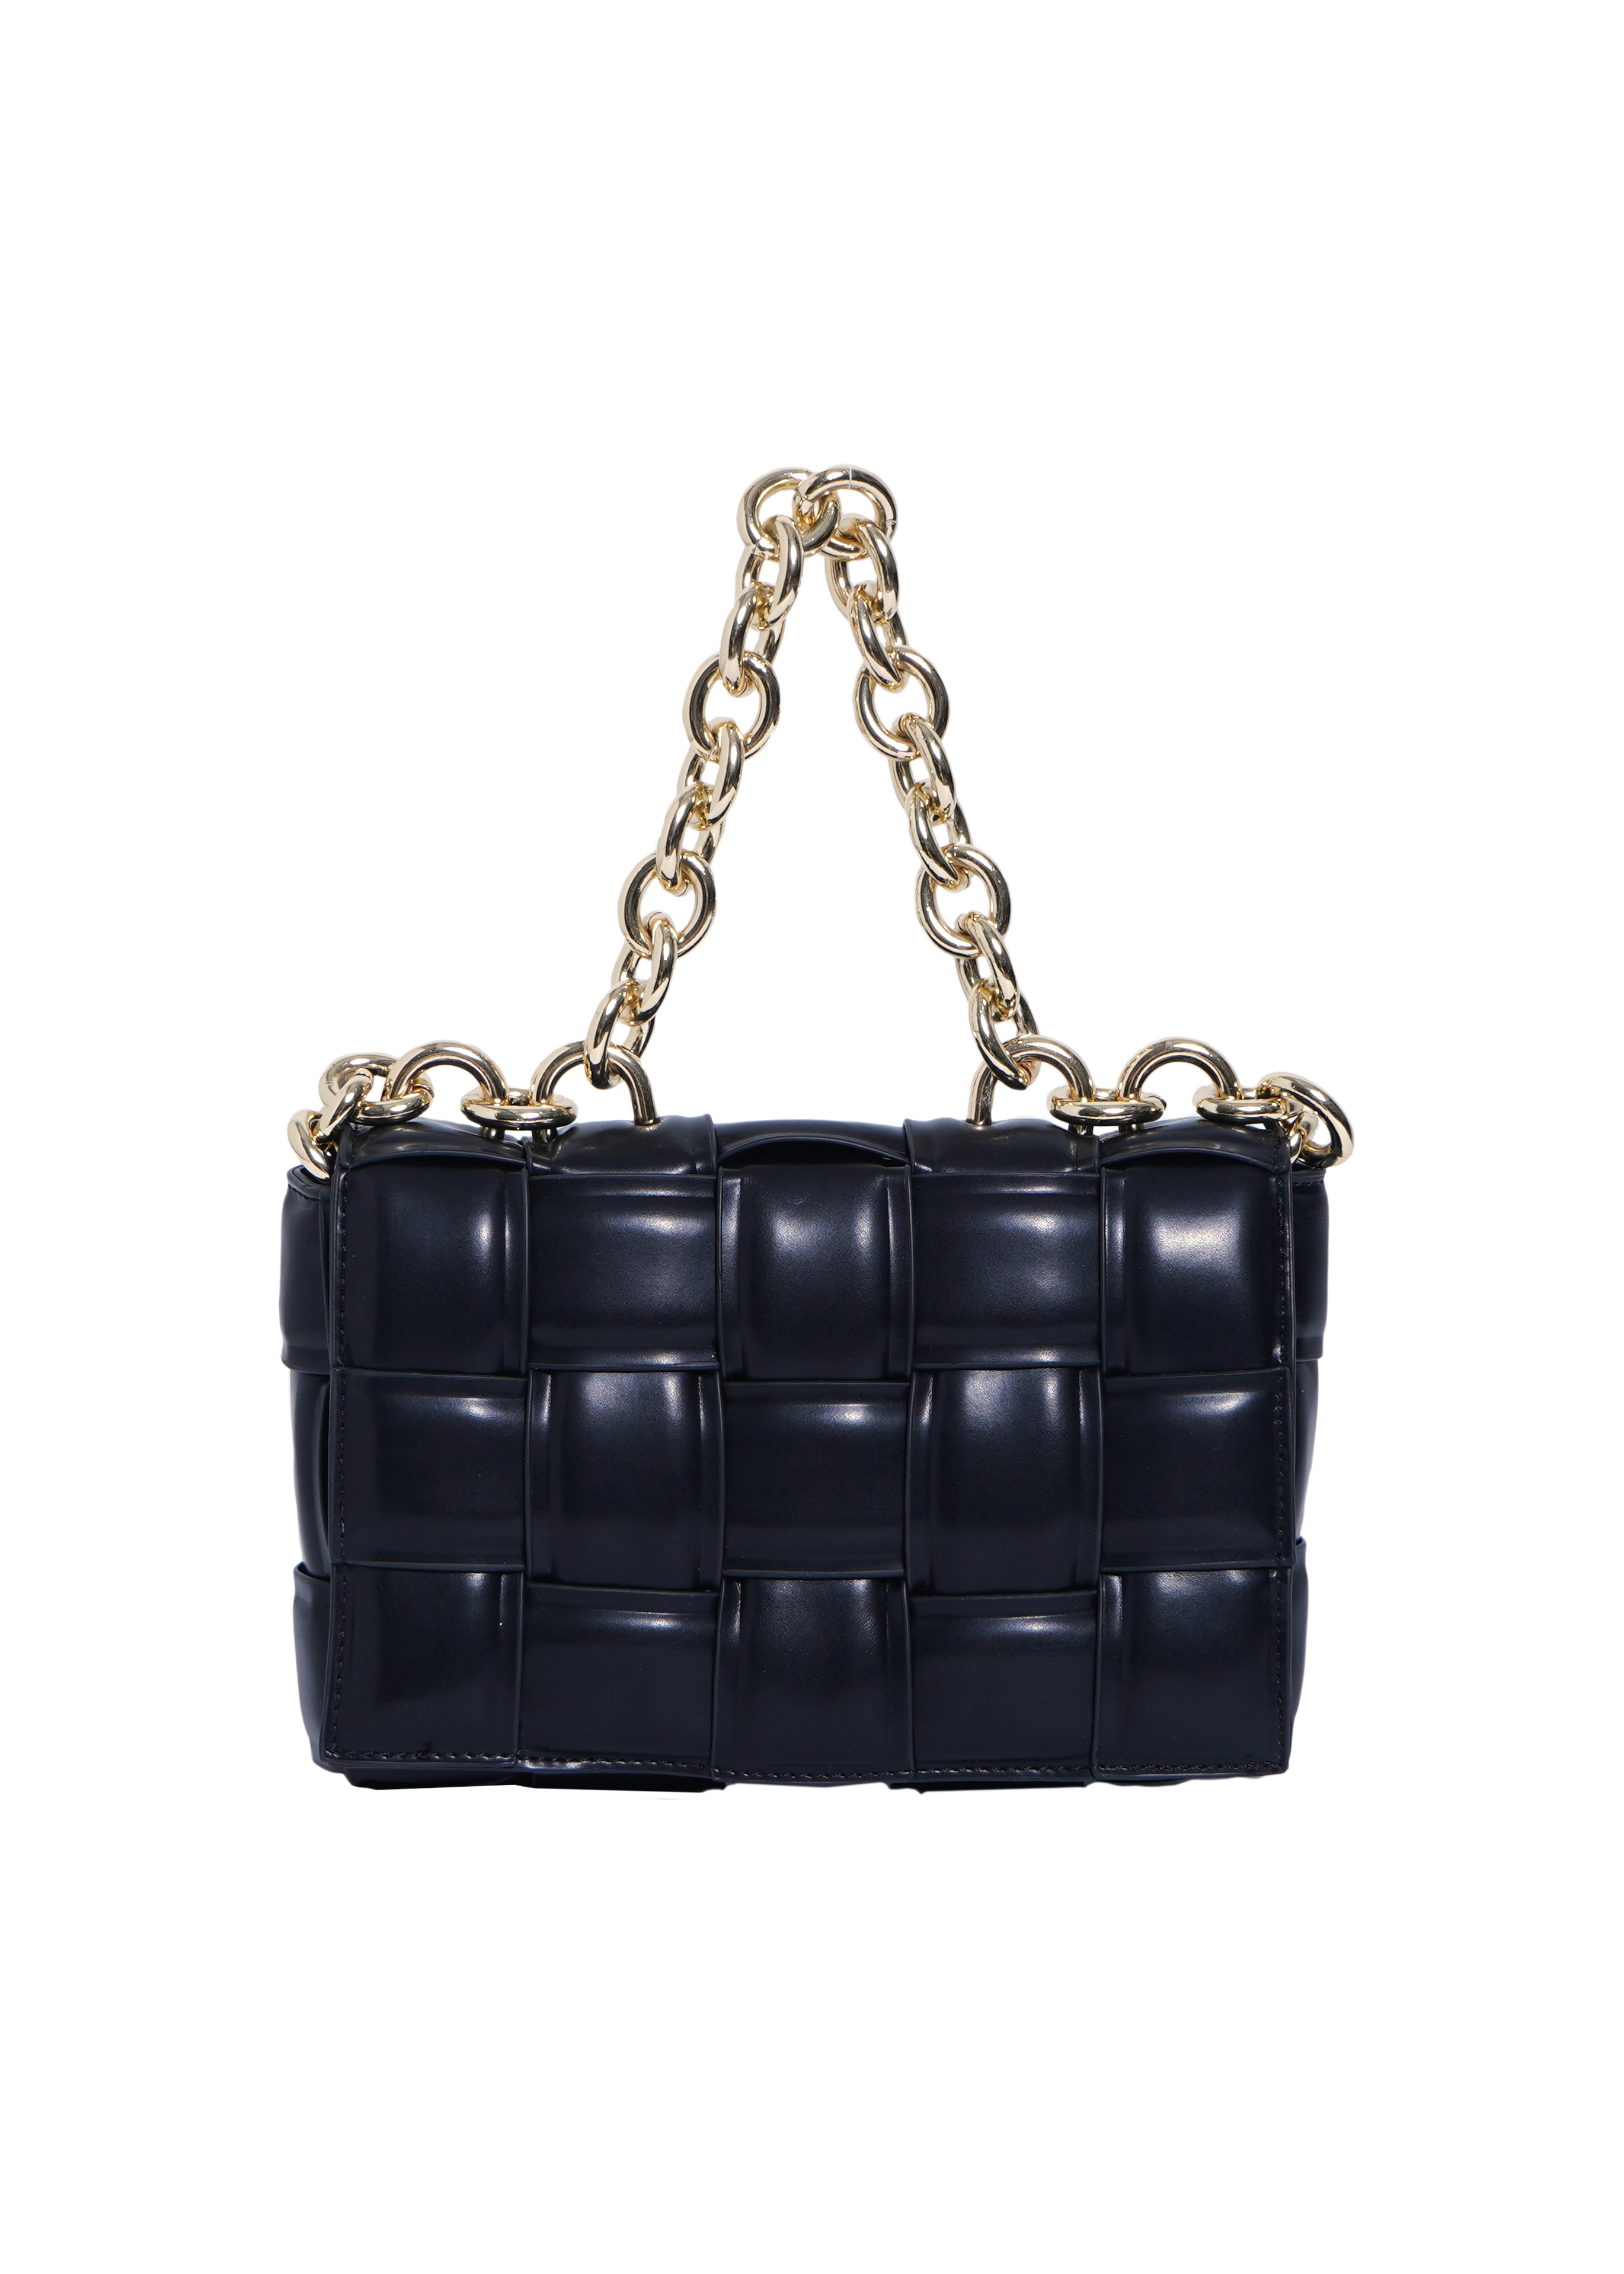 quilting leather chain bag(black)5/10ch-2